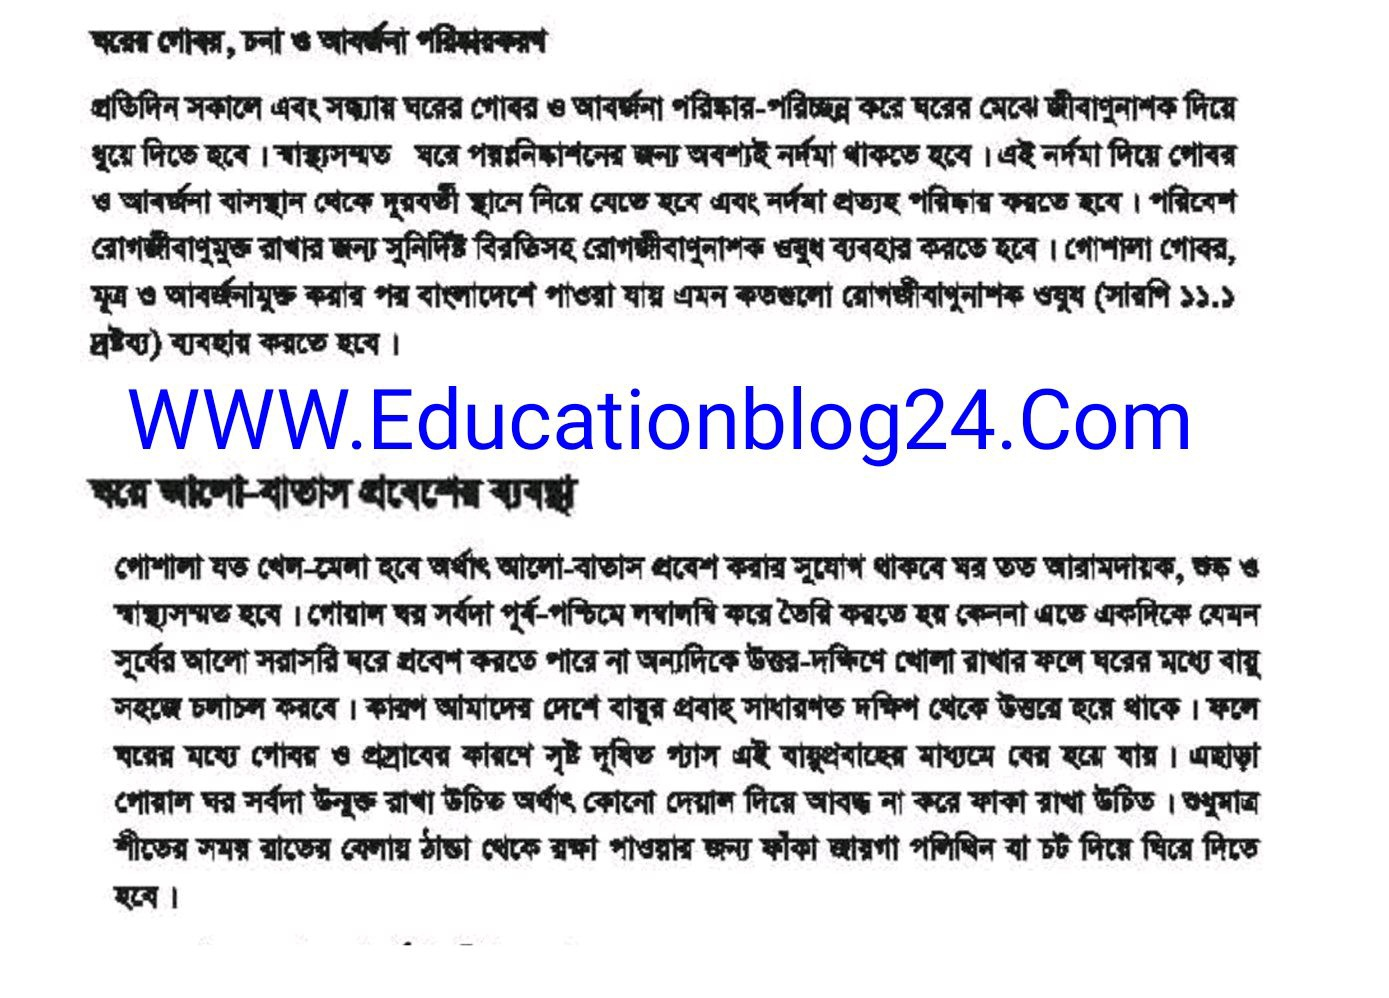 SSC / Dakhil (Vocational) Livestock Rearing and Farming Assignment Answer 2021 3